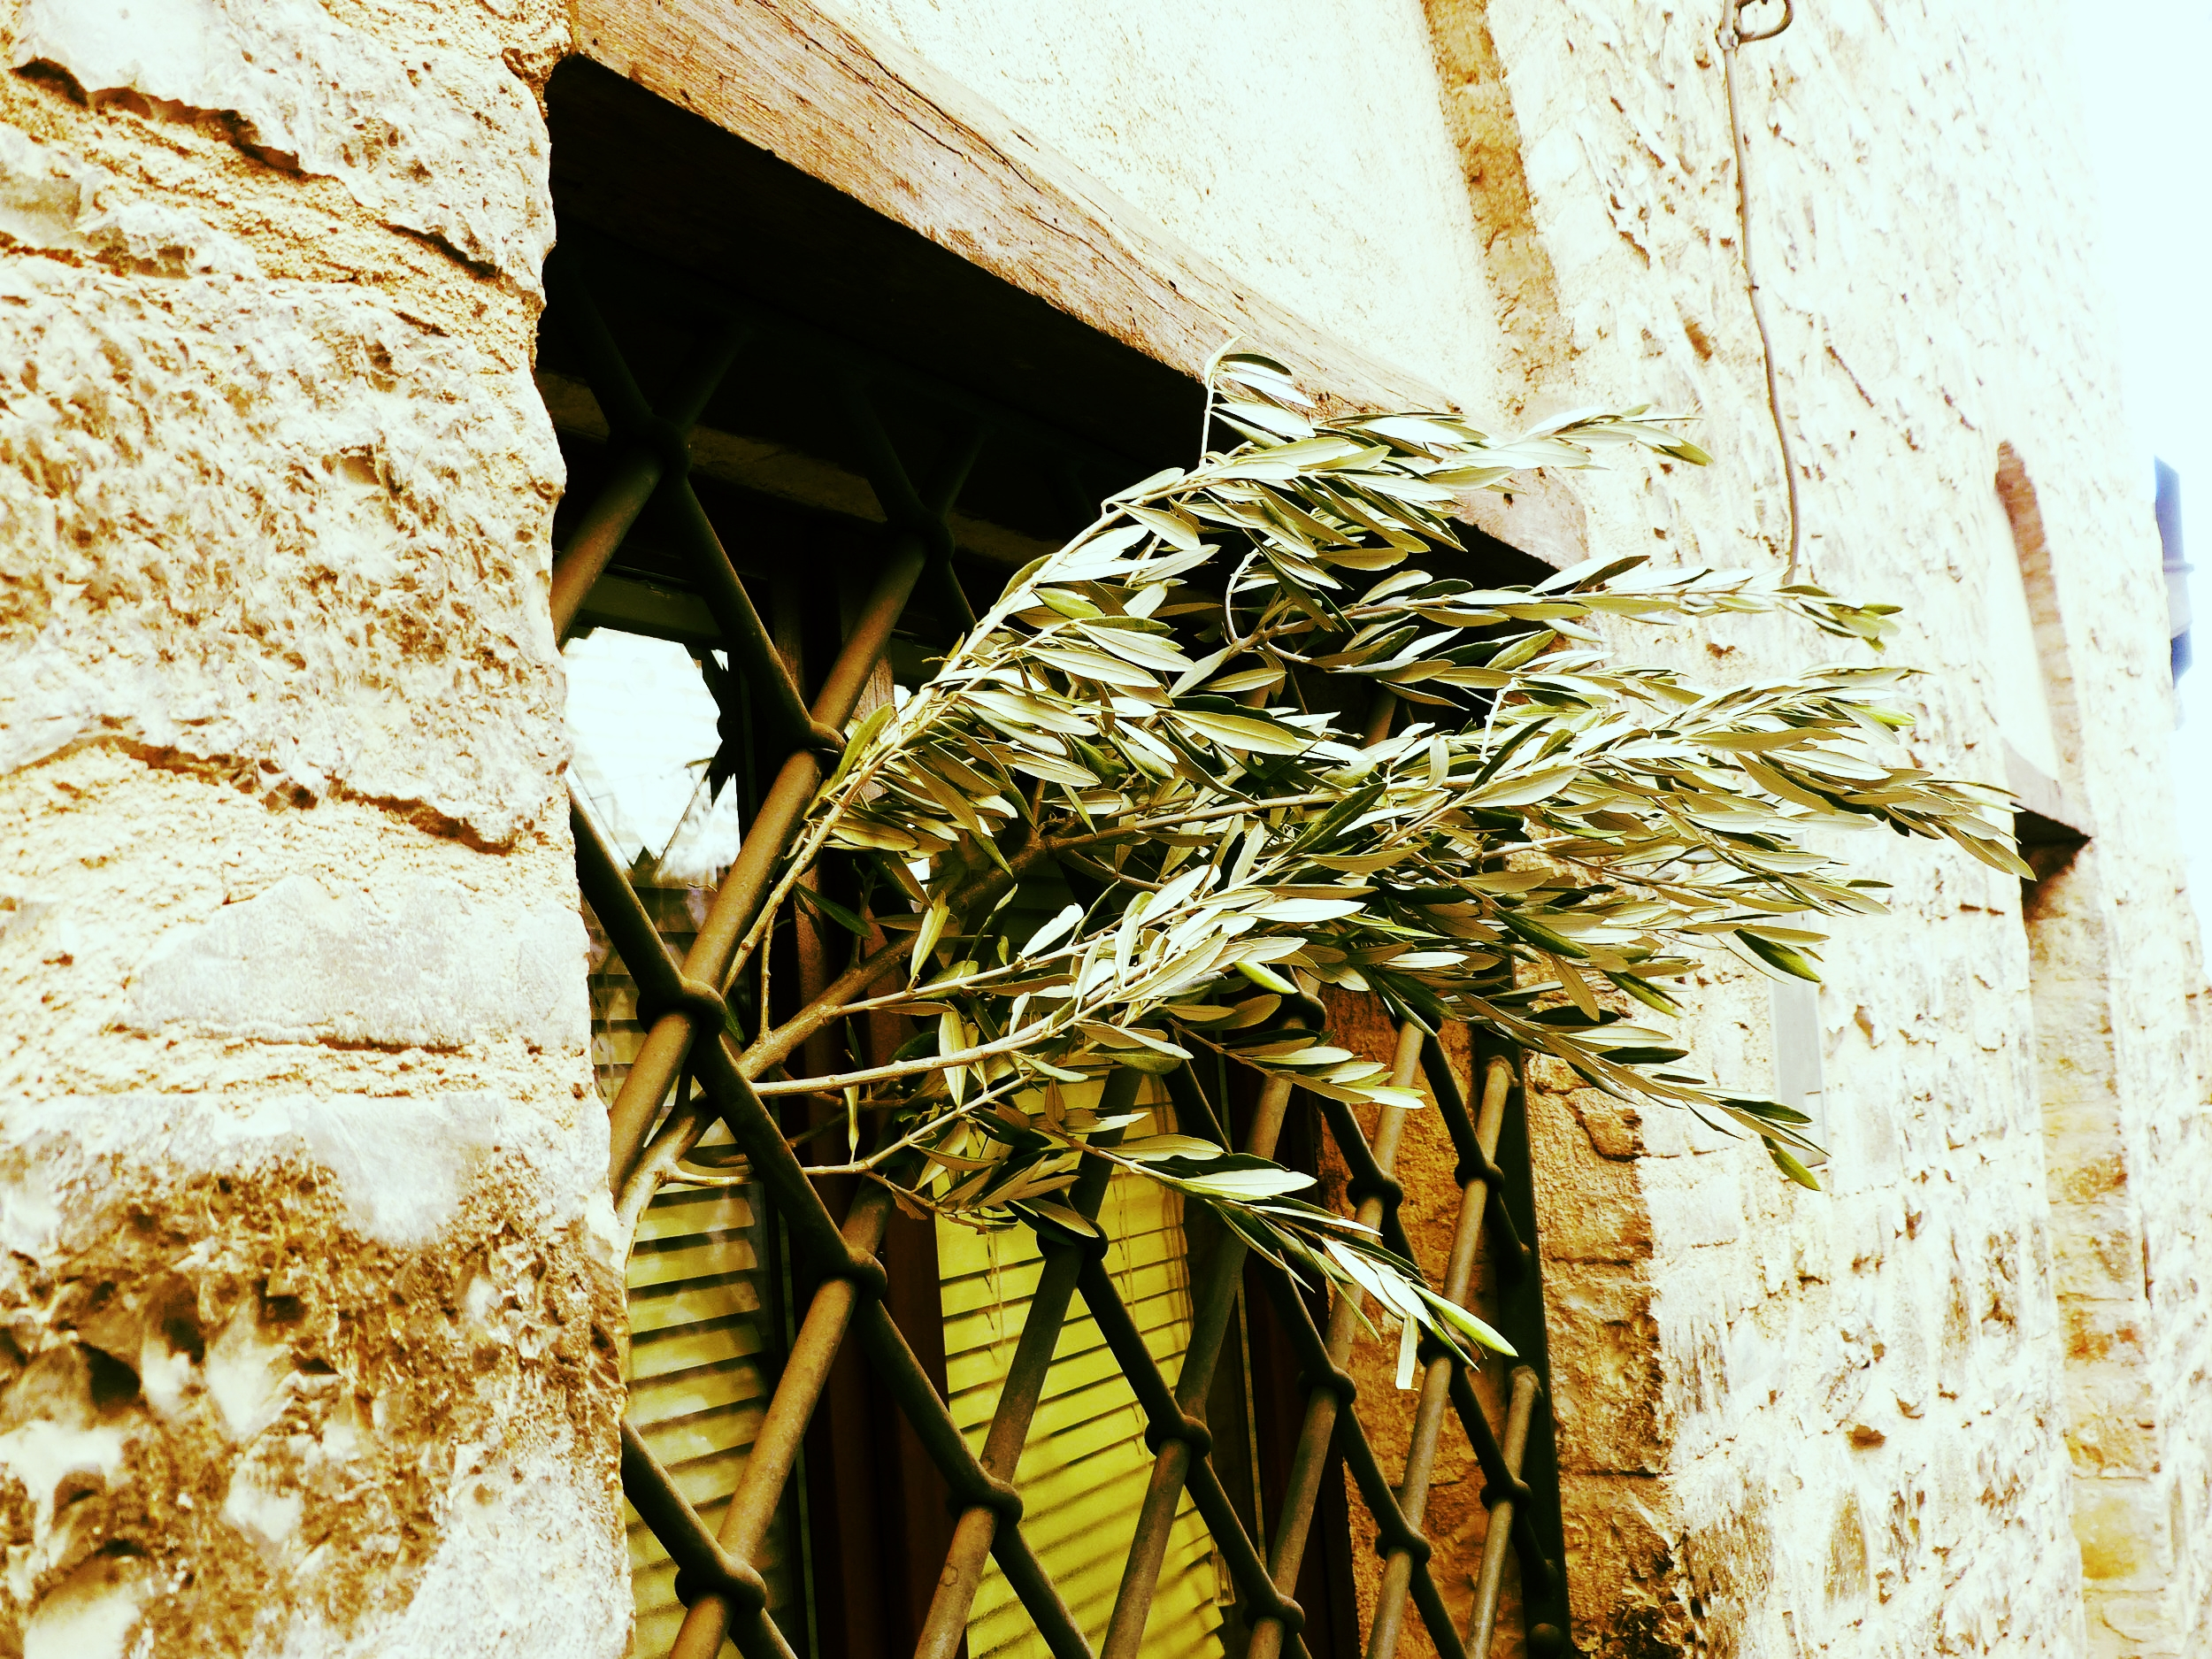 Olive branch at L'Oro di Spello, Umbria